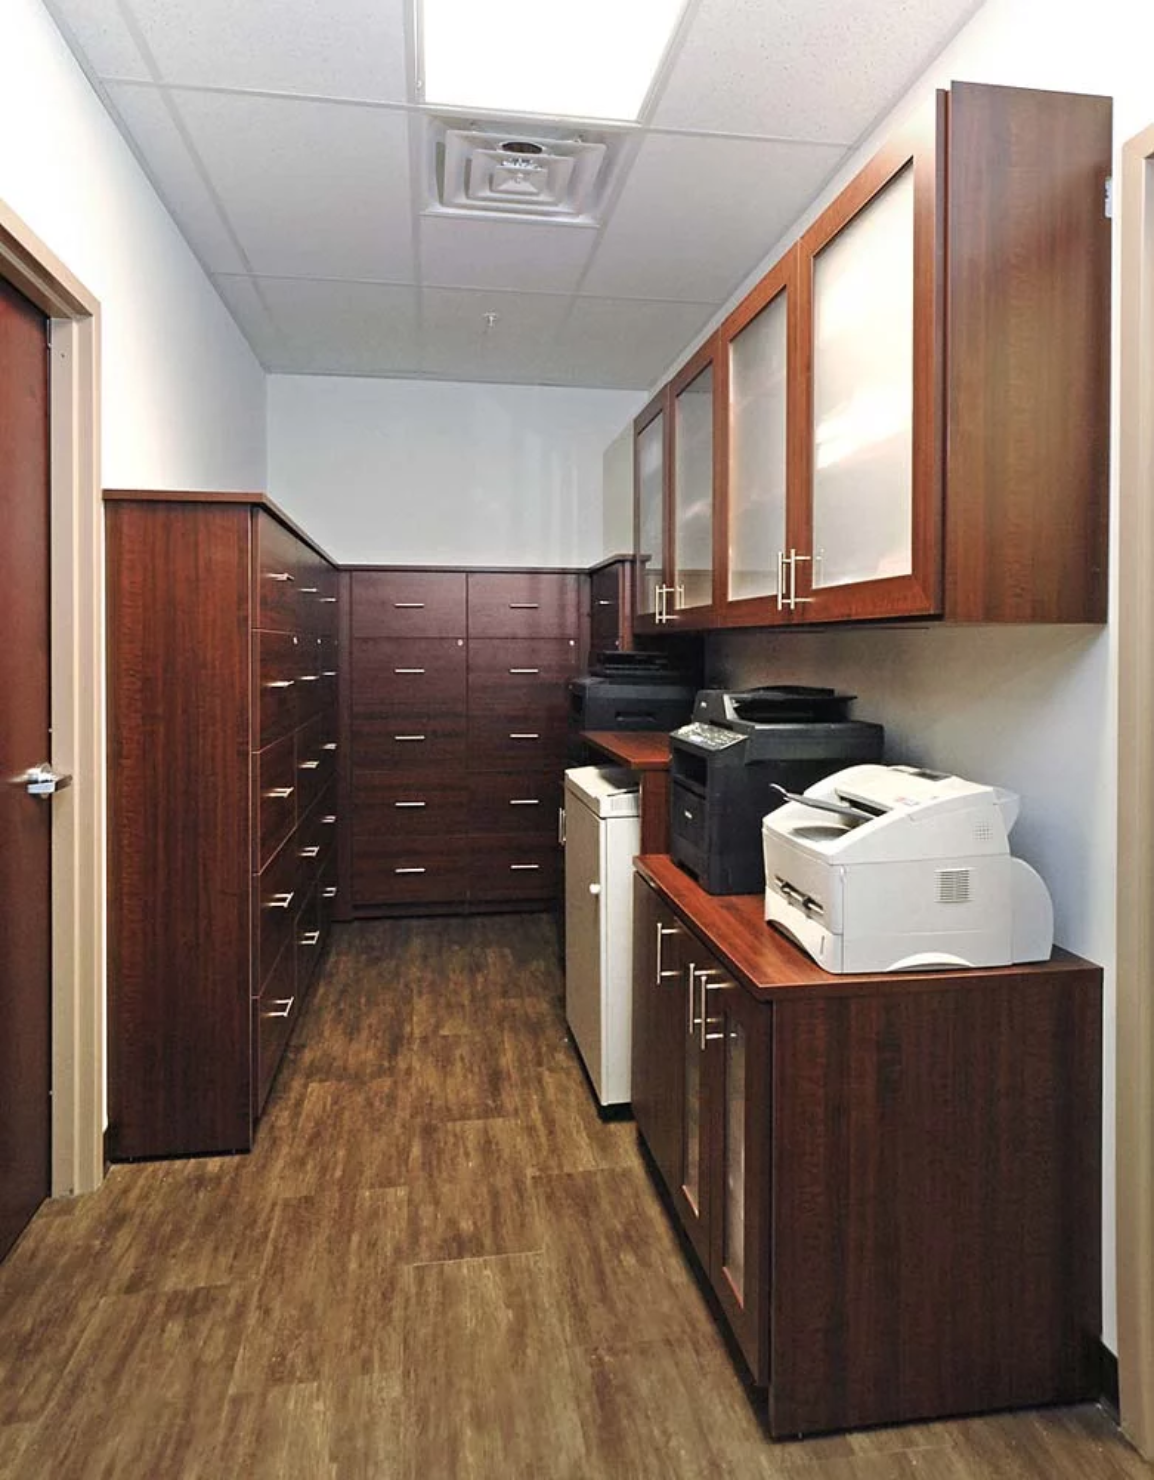 Custom built furniture cabinets housing office equipment and supplies